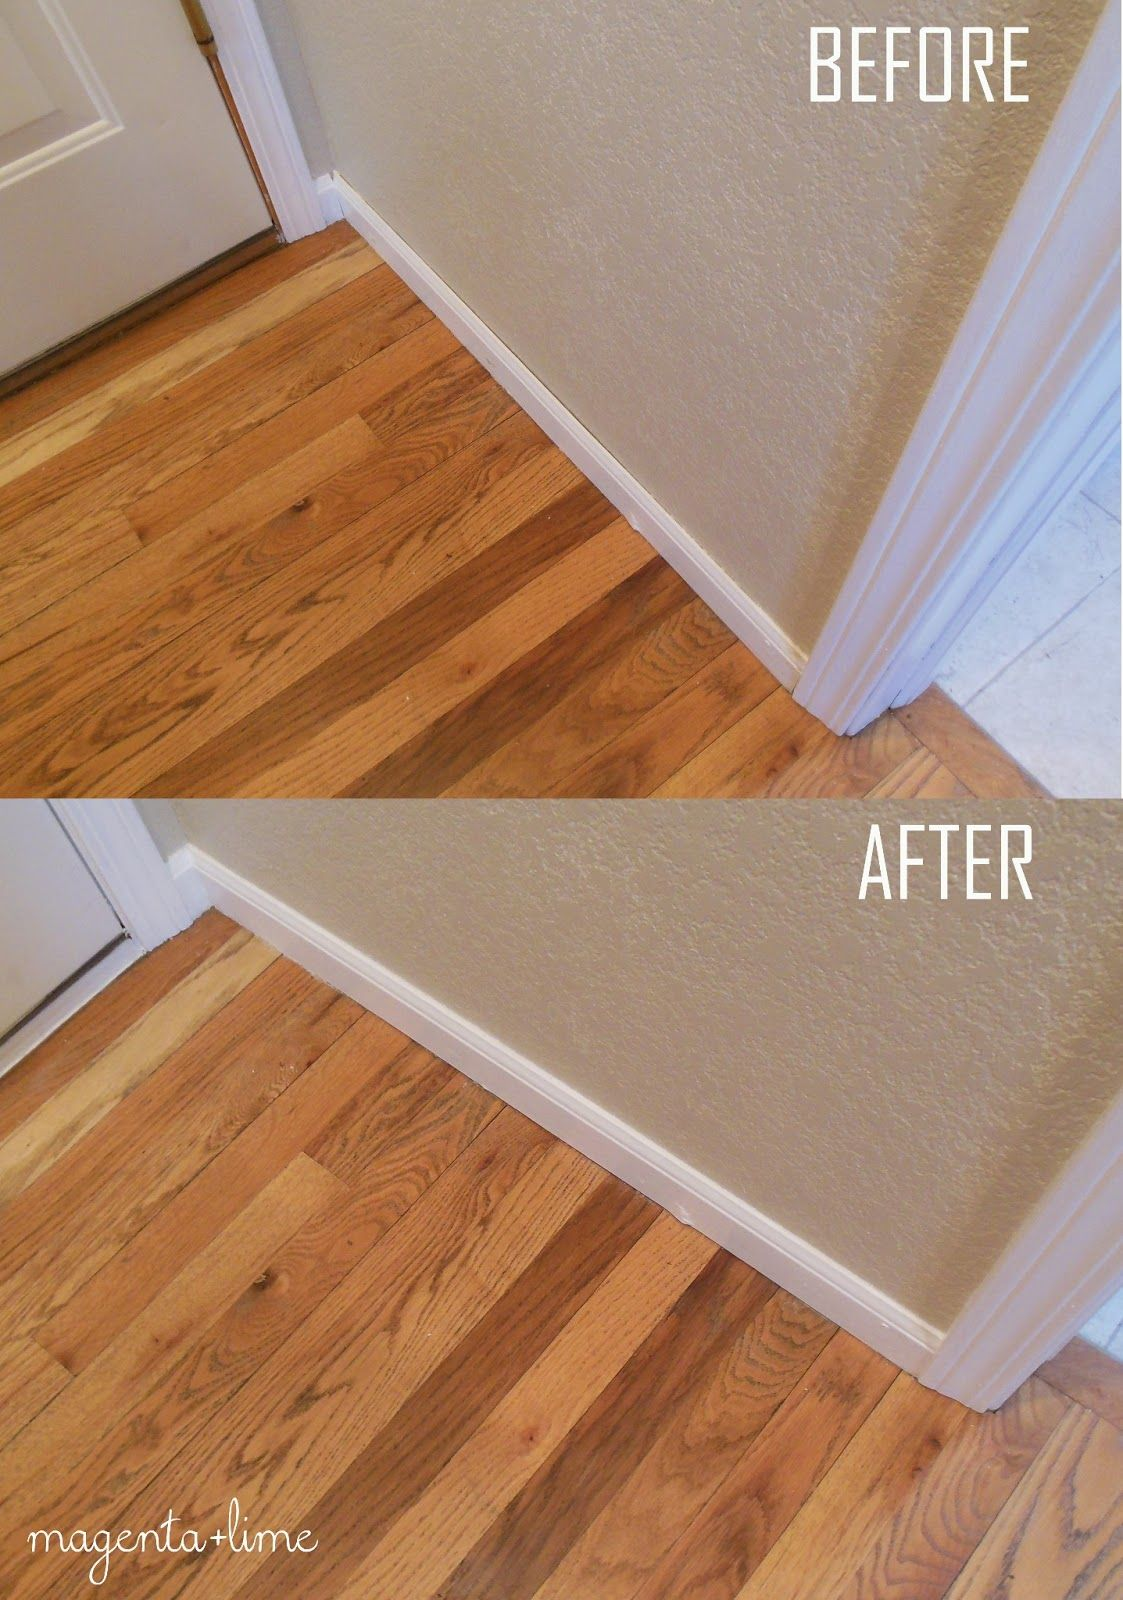 Caulk baseboards for a professional finish diy pinterest caulk baseboards for a professional finish doublecrazyfo Image collections